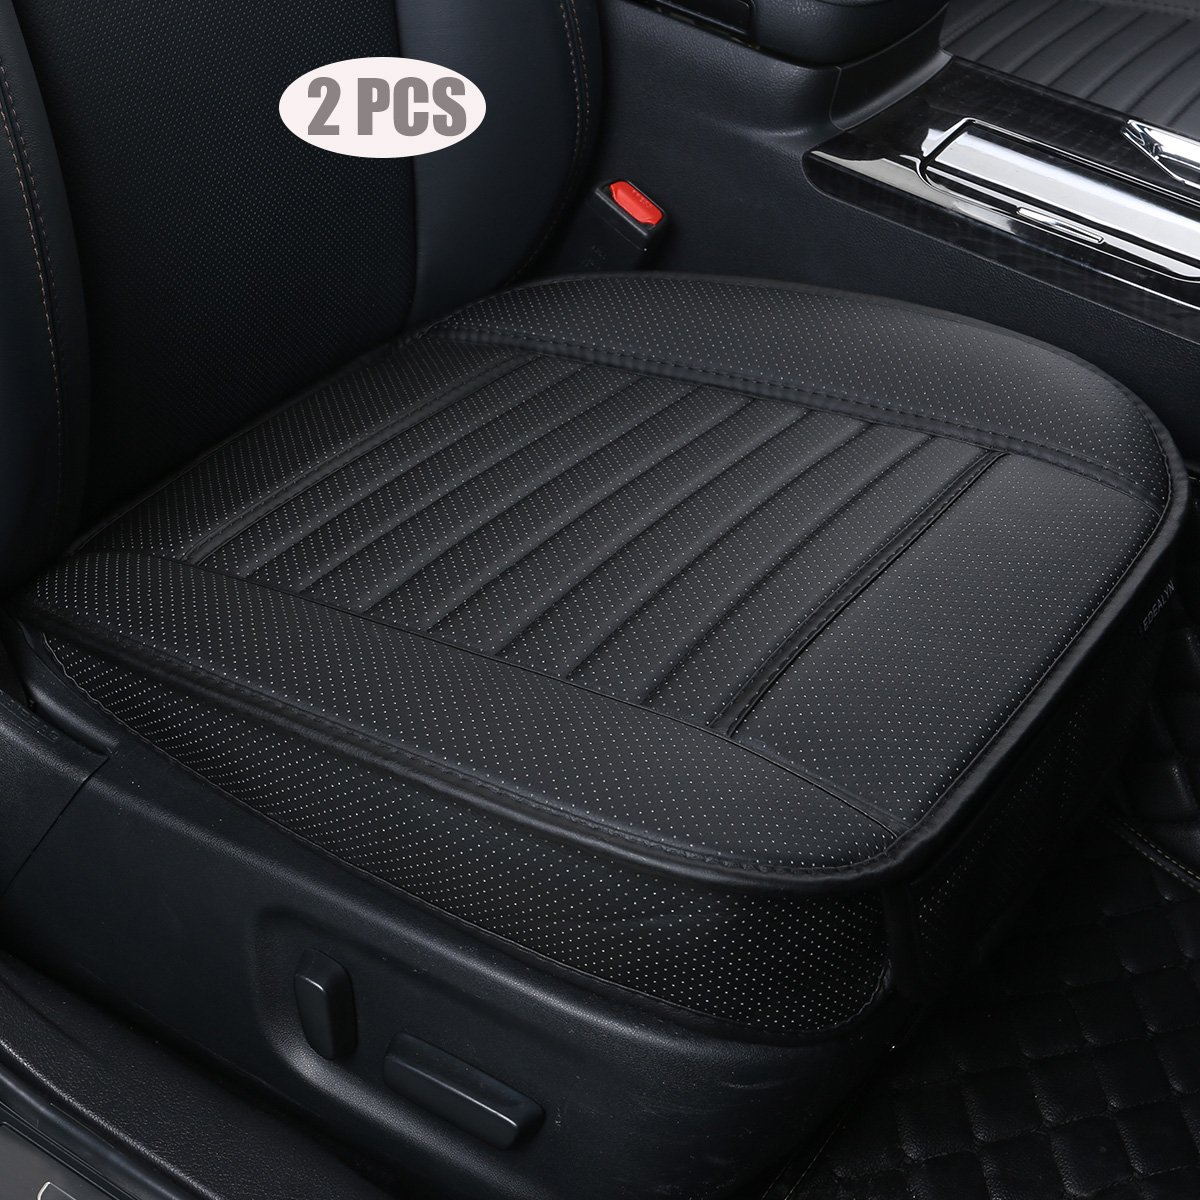 EDEALYN (2PCS PU Leather Seat Covers Auto Seat Protector Car Seat Covers for Front Seat with Side Flaps,(Deep20 inch × Width20 inch × Thick 0.4 inch) (Black-2 PCS)